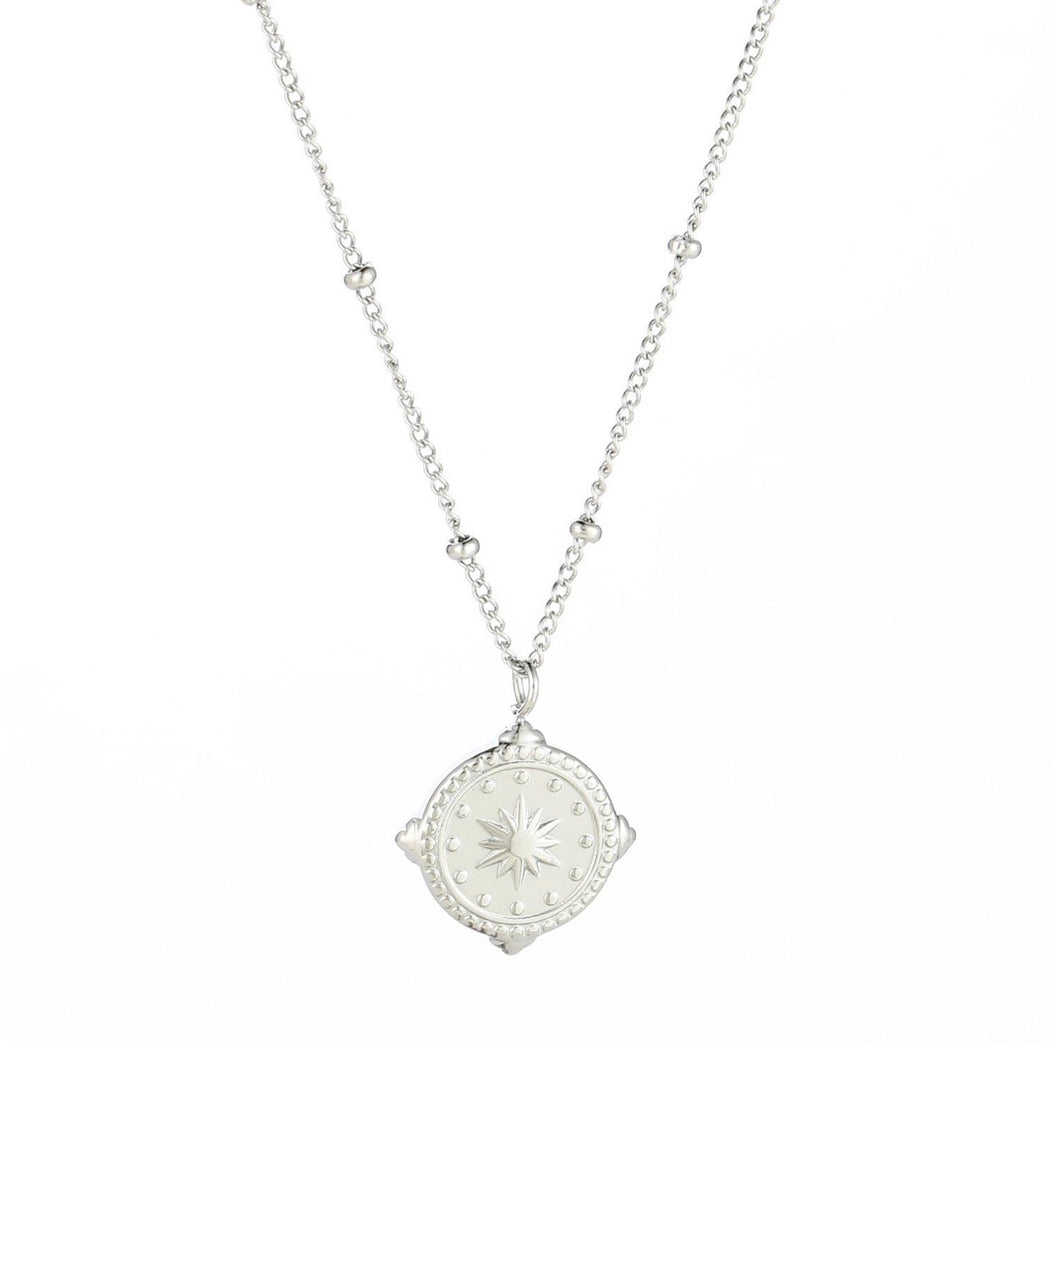 KETTING 'TRAVEL THE WORLD' ZILVER